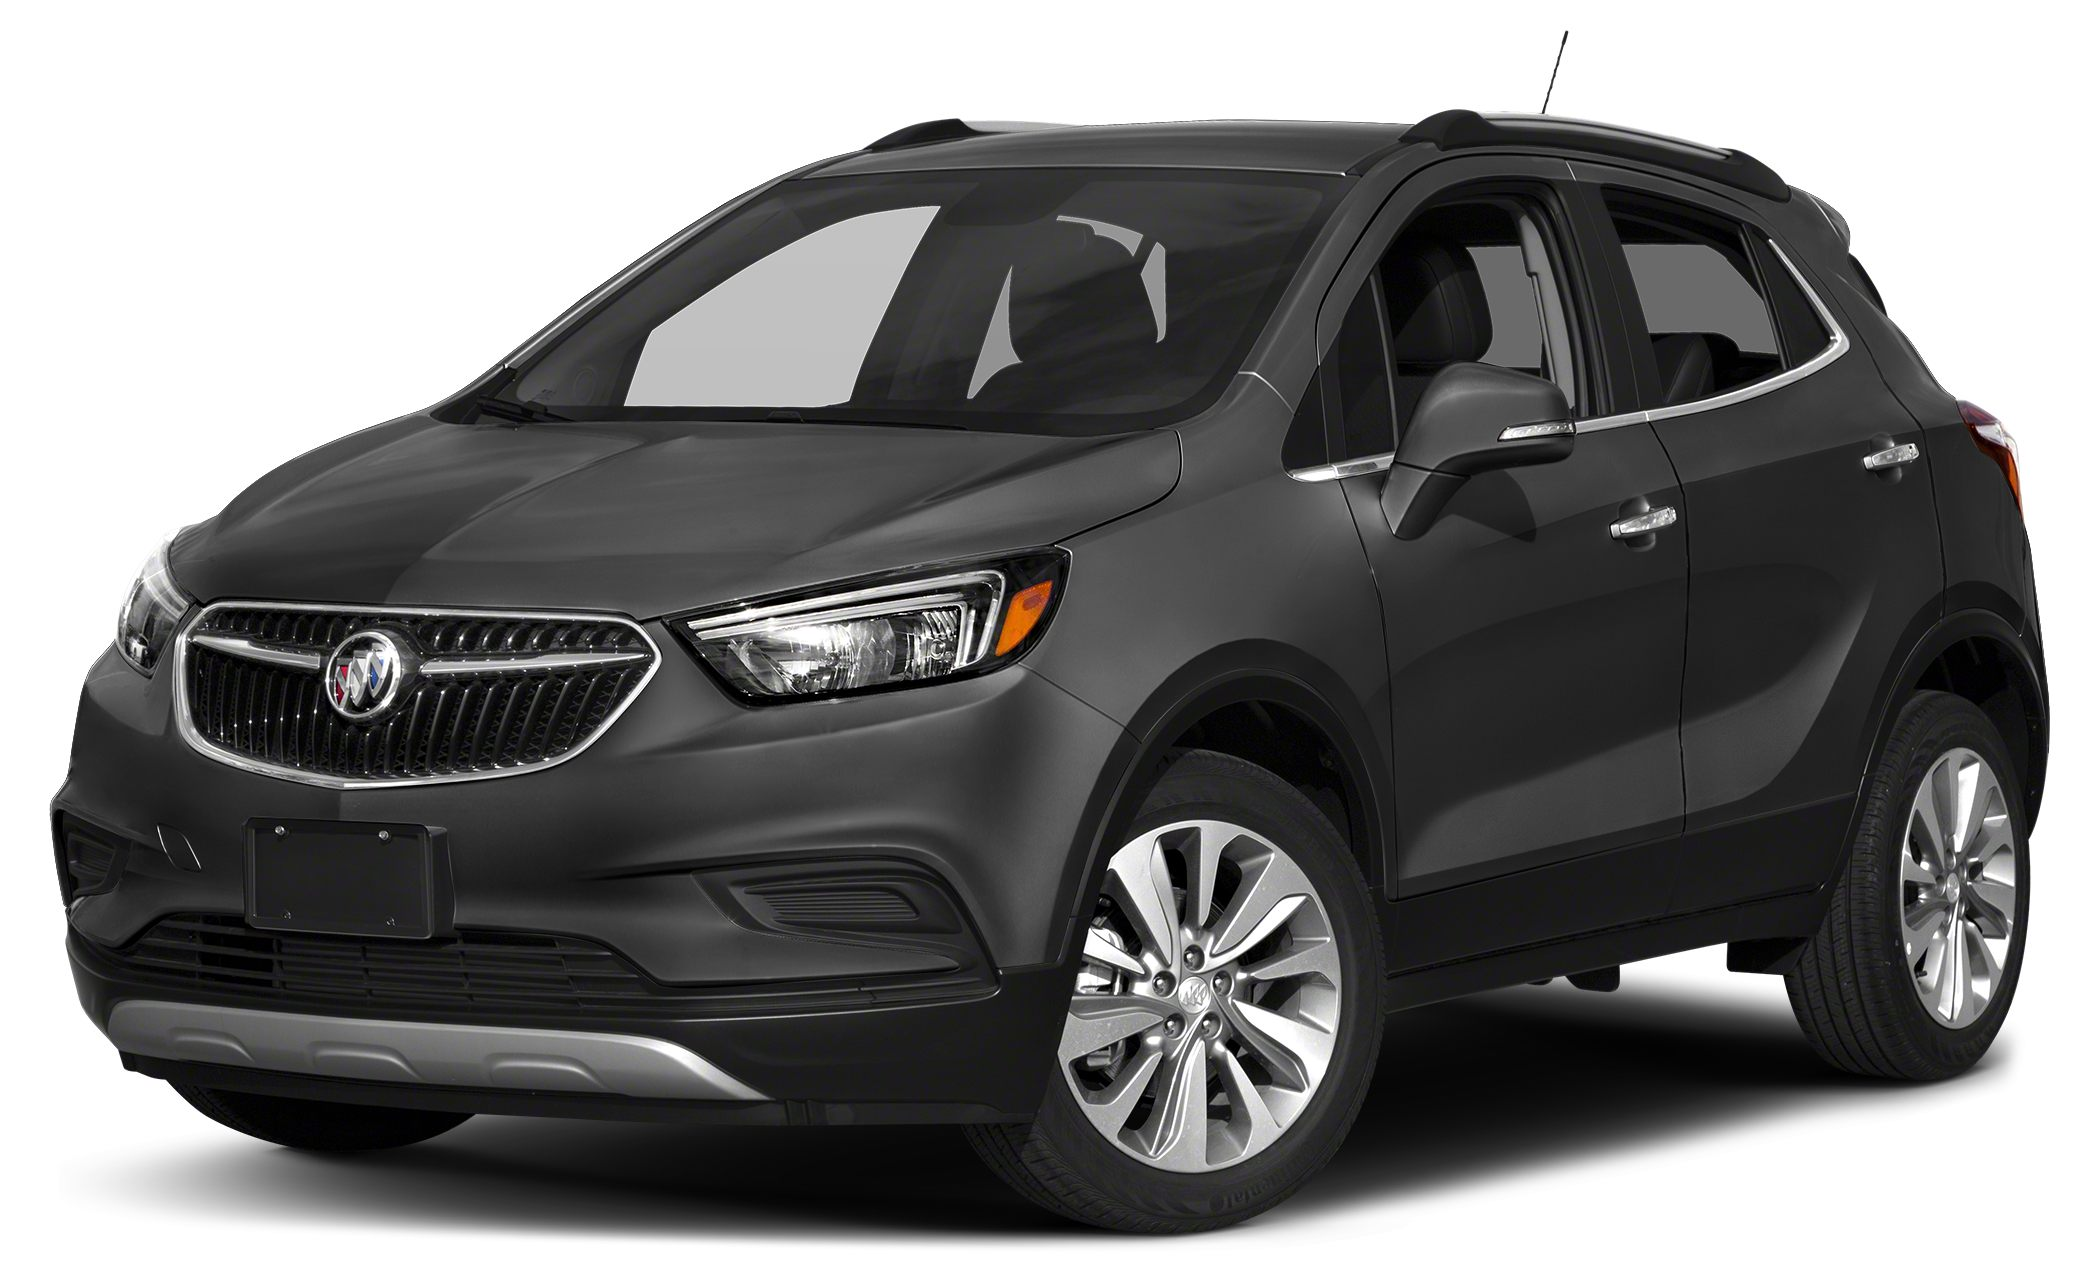 2018 Buick Encore Preferred Graphite Gray Metallic 2018 Buick Encore Preferred AWD 6-Speed Automat